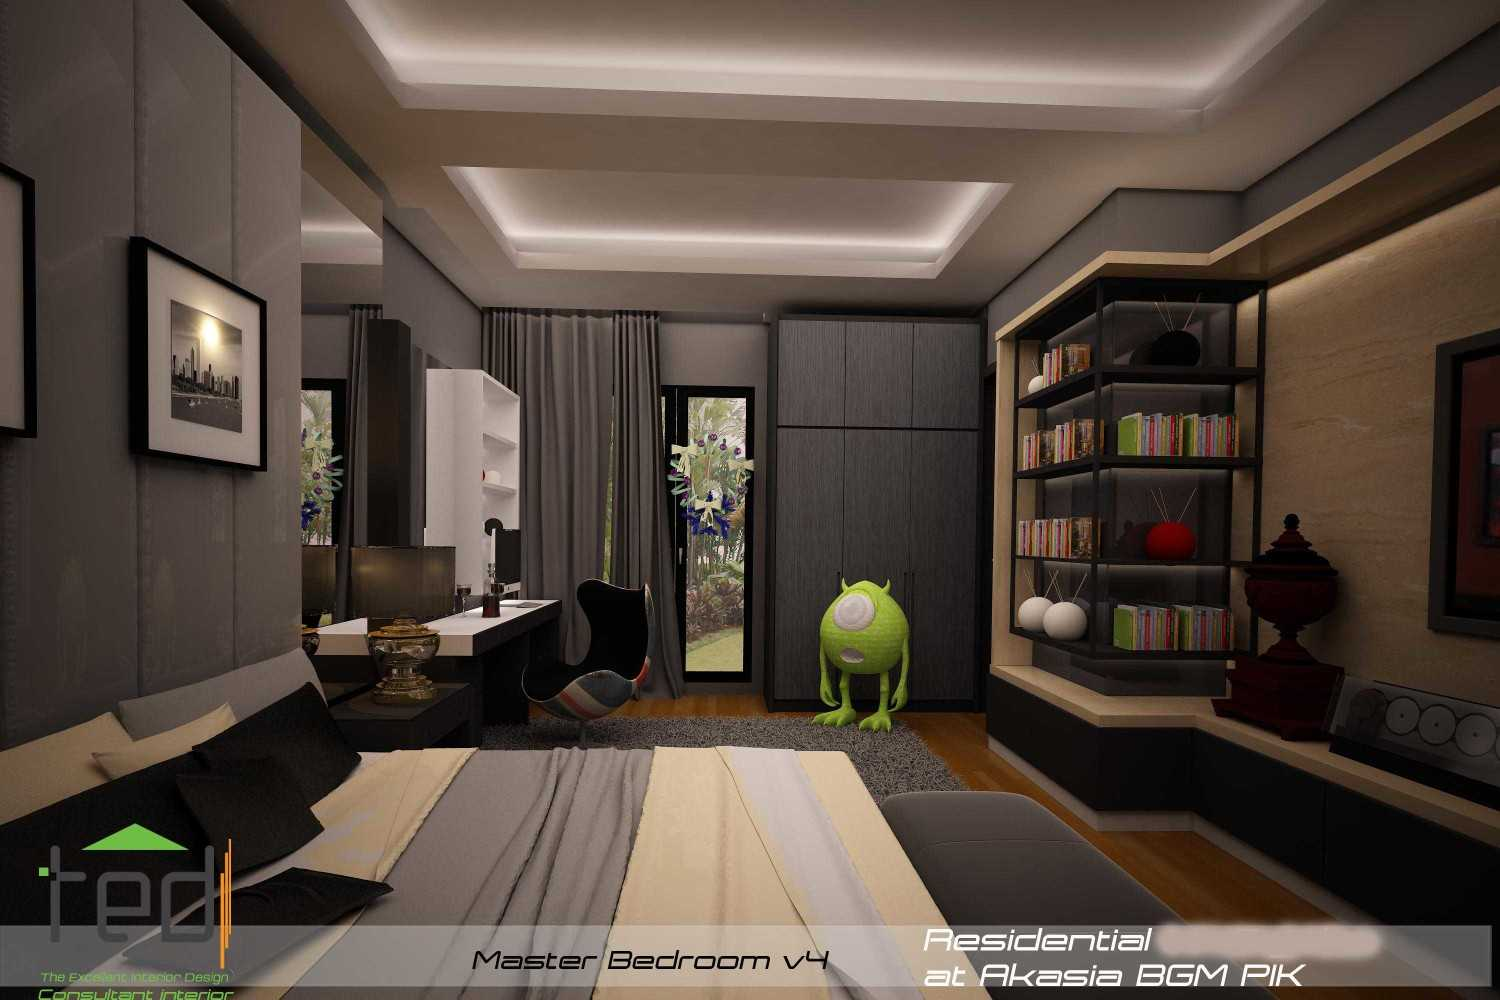 Pd Teguh Desain Indonesia Residential At Akasia Jakarta Jakarta Master-Bedroom-View-4-1 Modern 27638